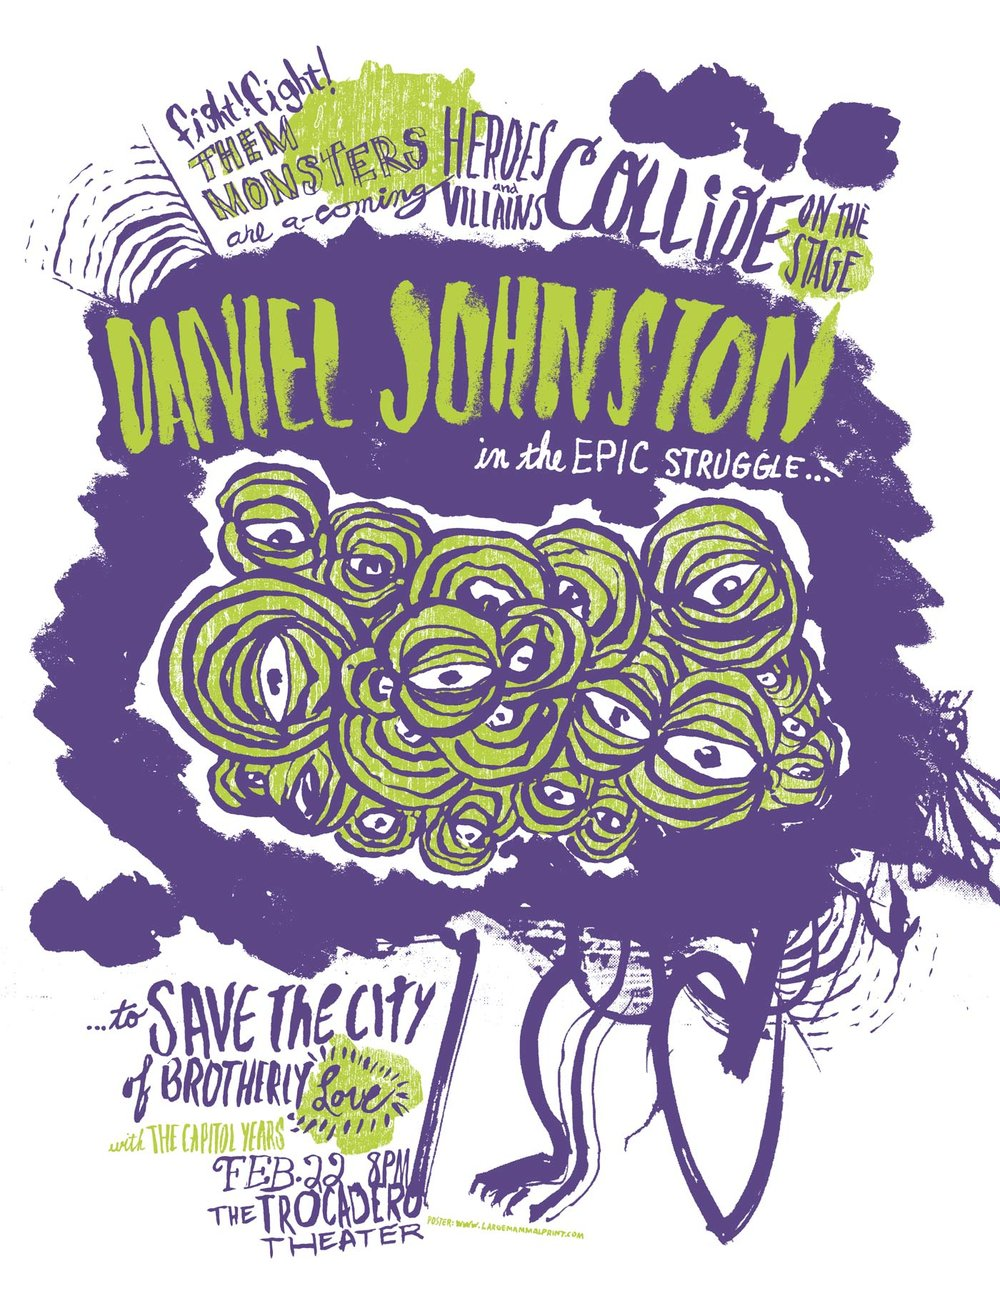 L801_Daniel-Johnston.jpg